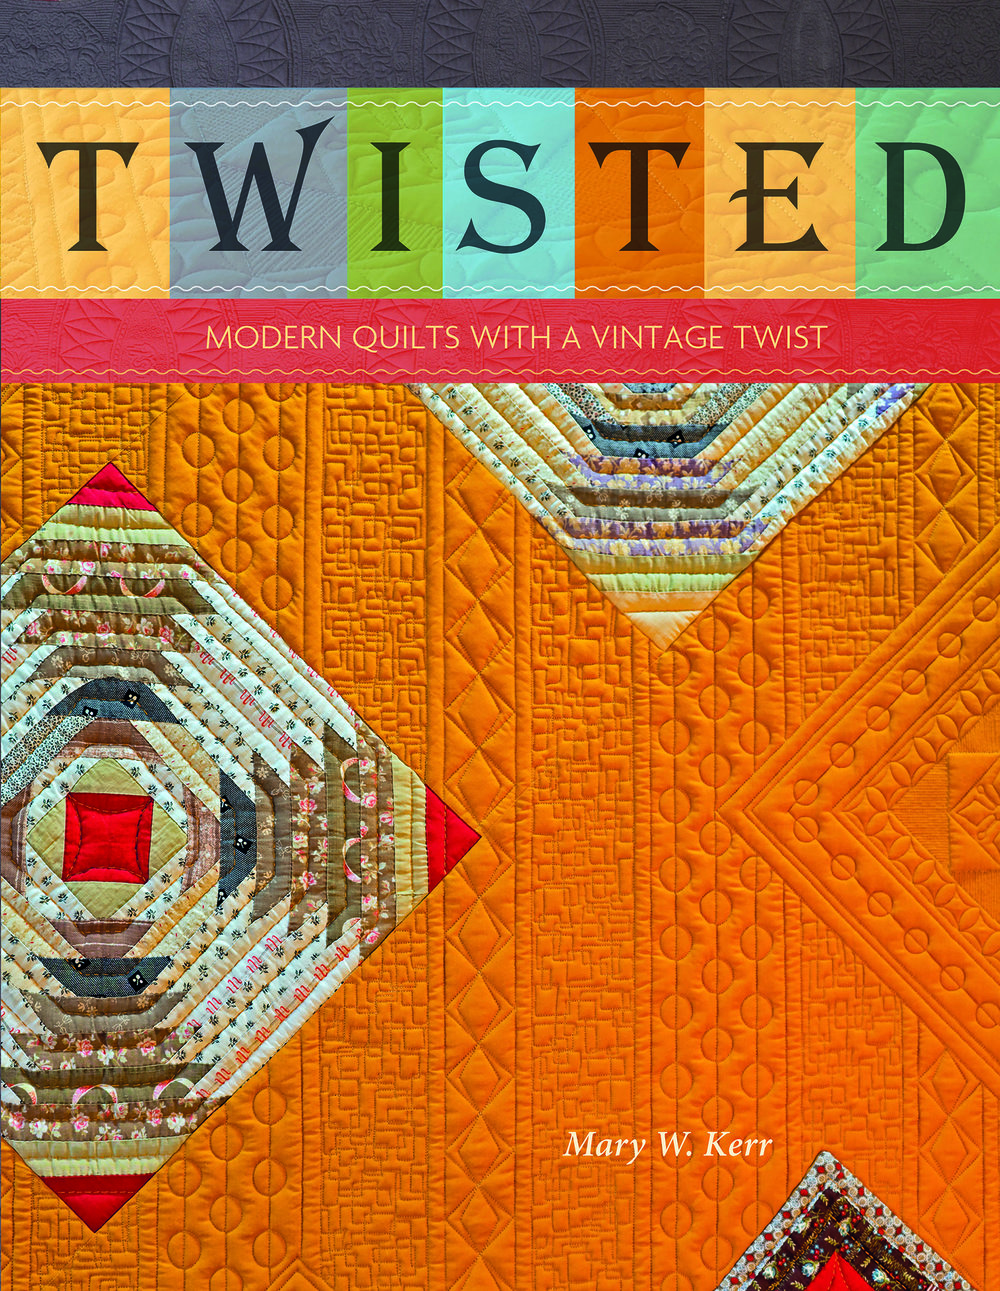 Mary Kerr's 2016 book  Twisted